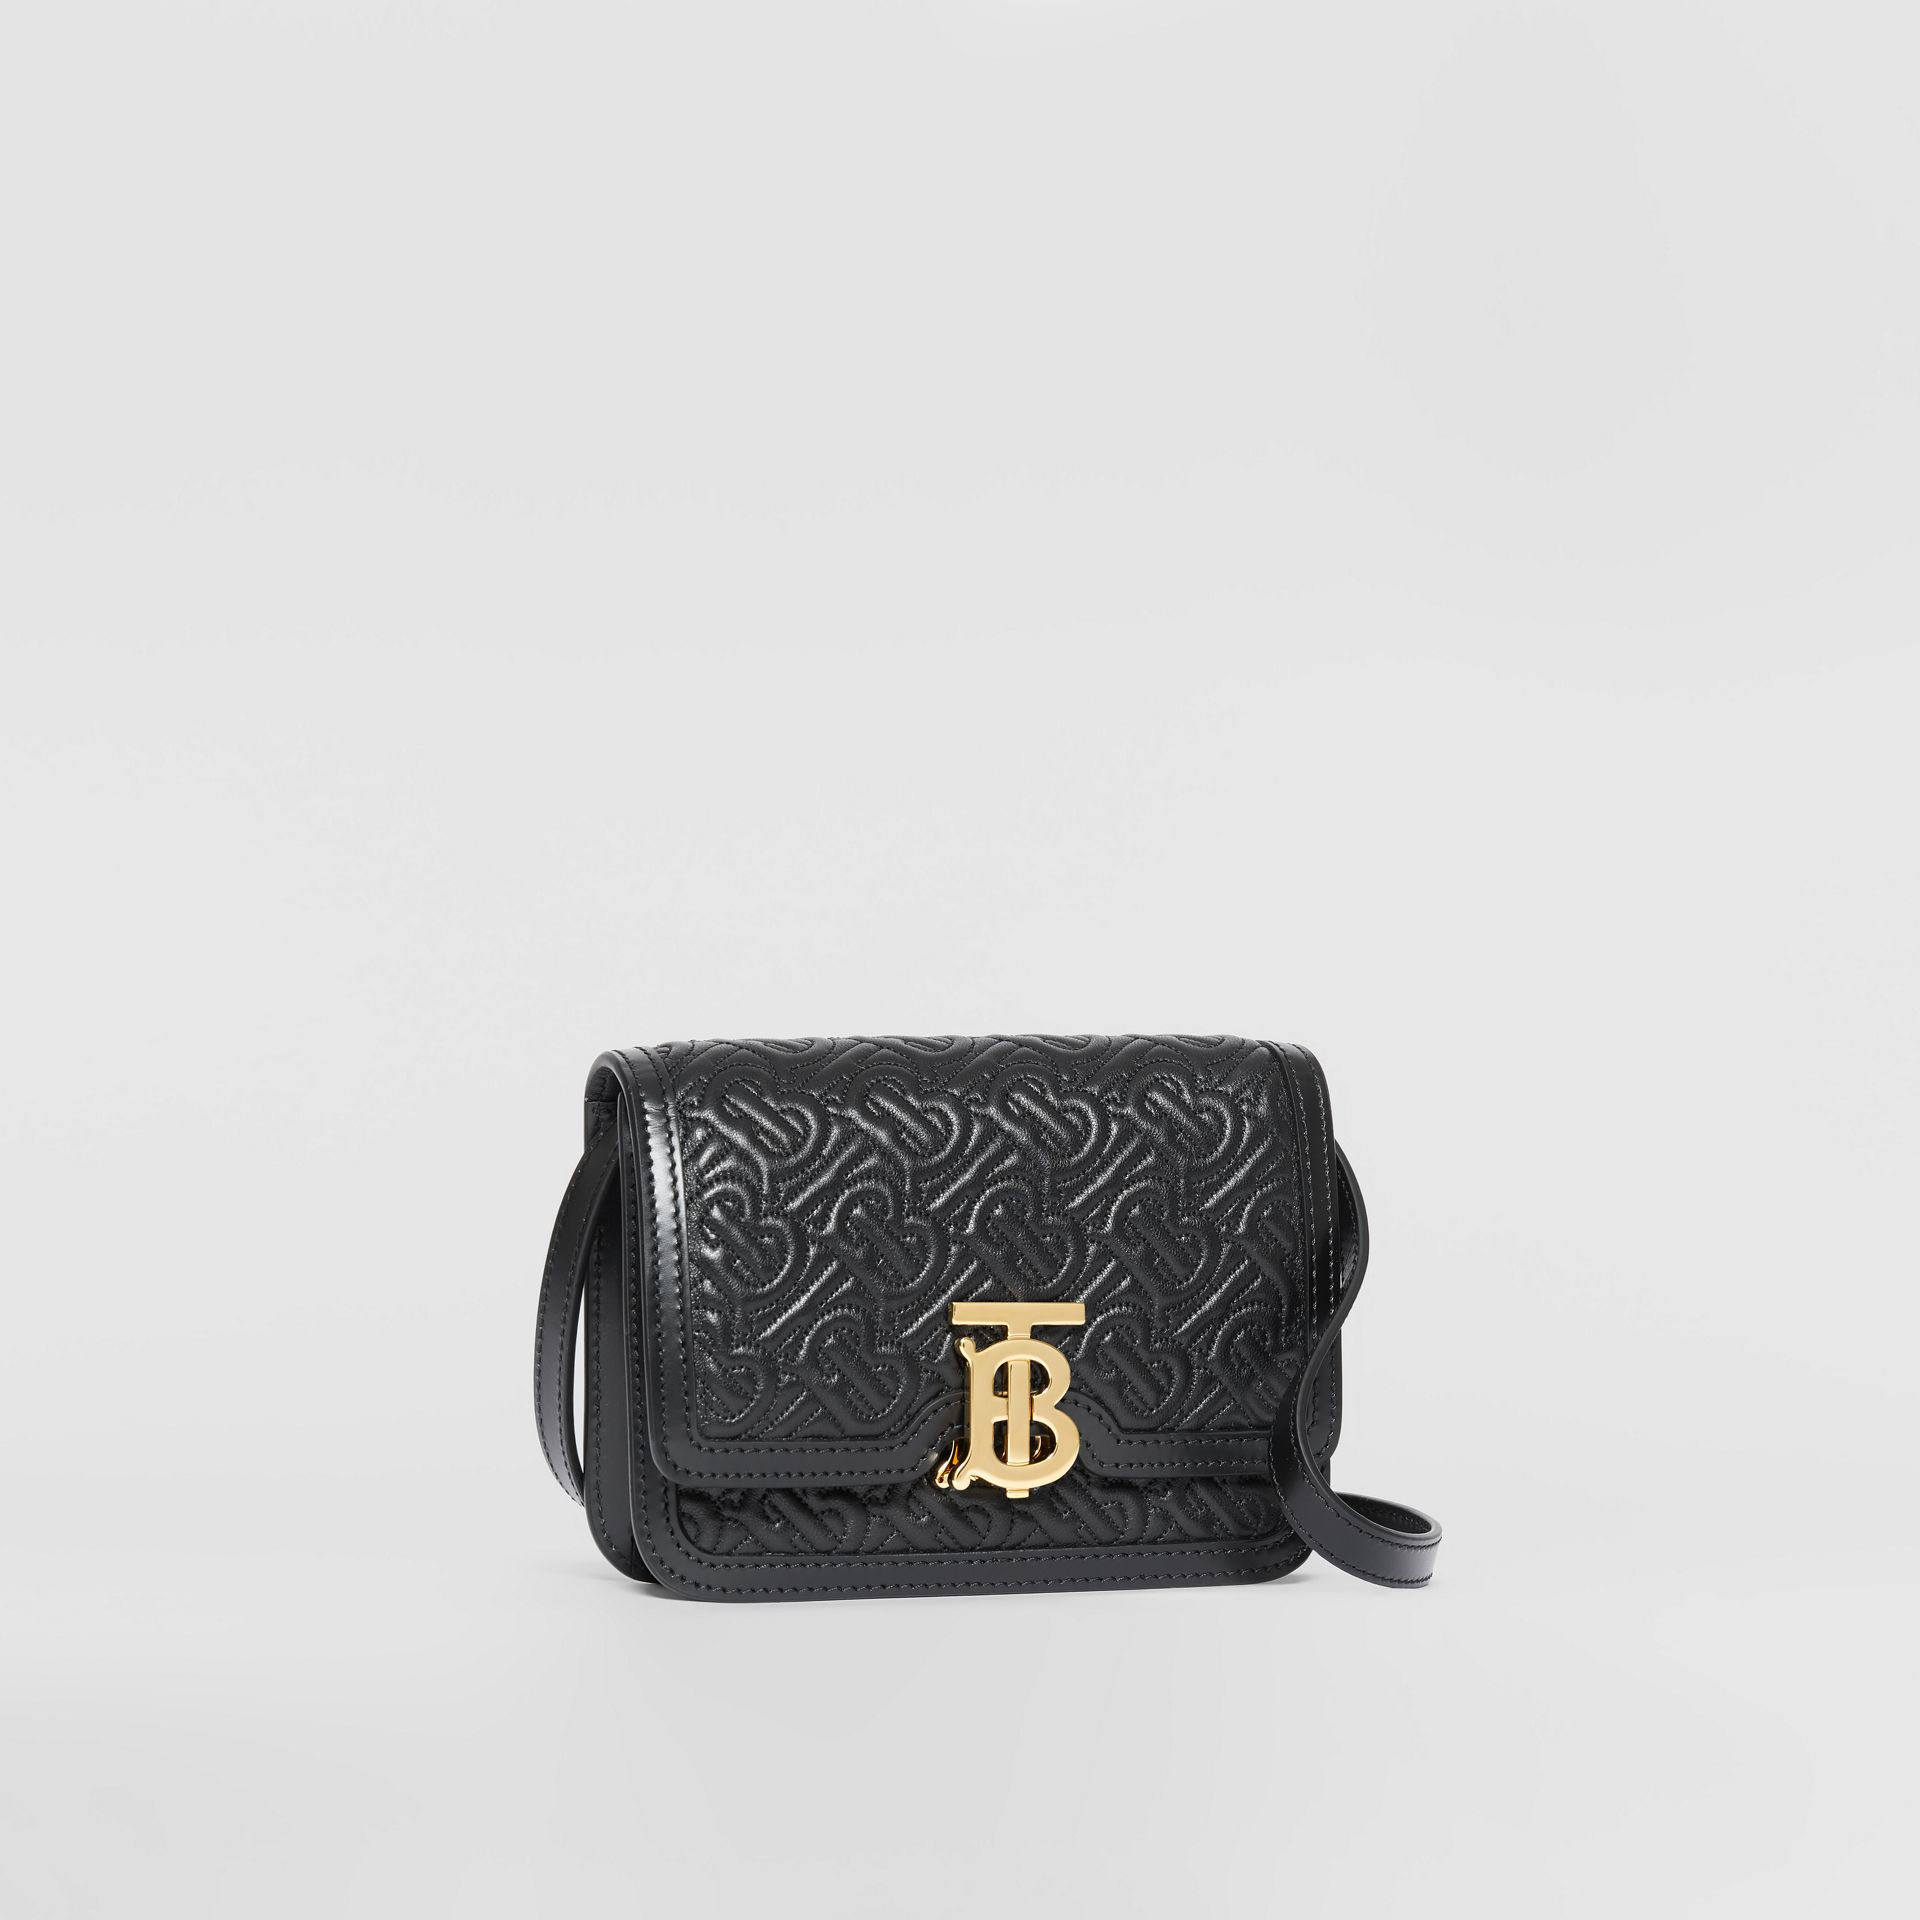 Mini Quilted Monogram Lambskin TB Bag in Black - Women | Burberry United Kingdom - gallery image 4